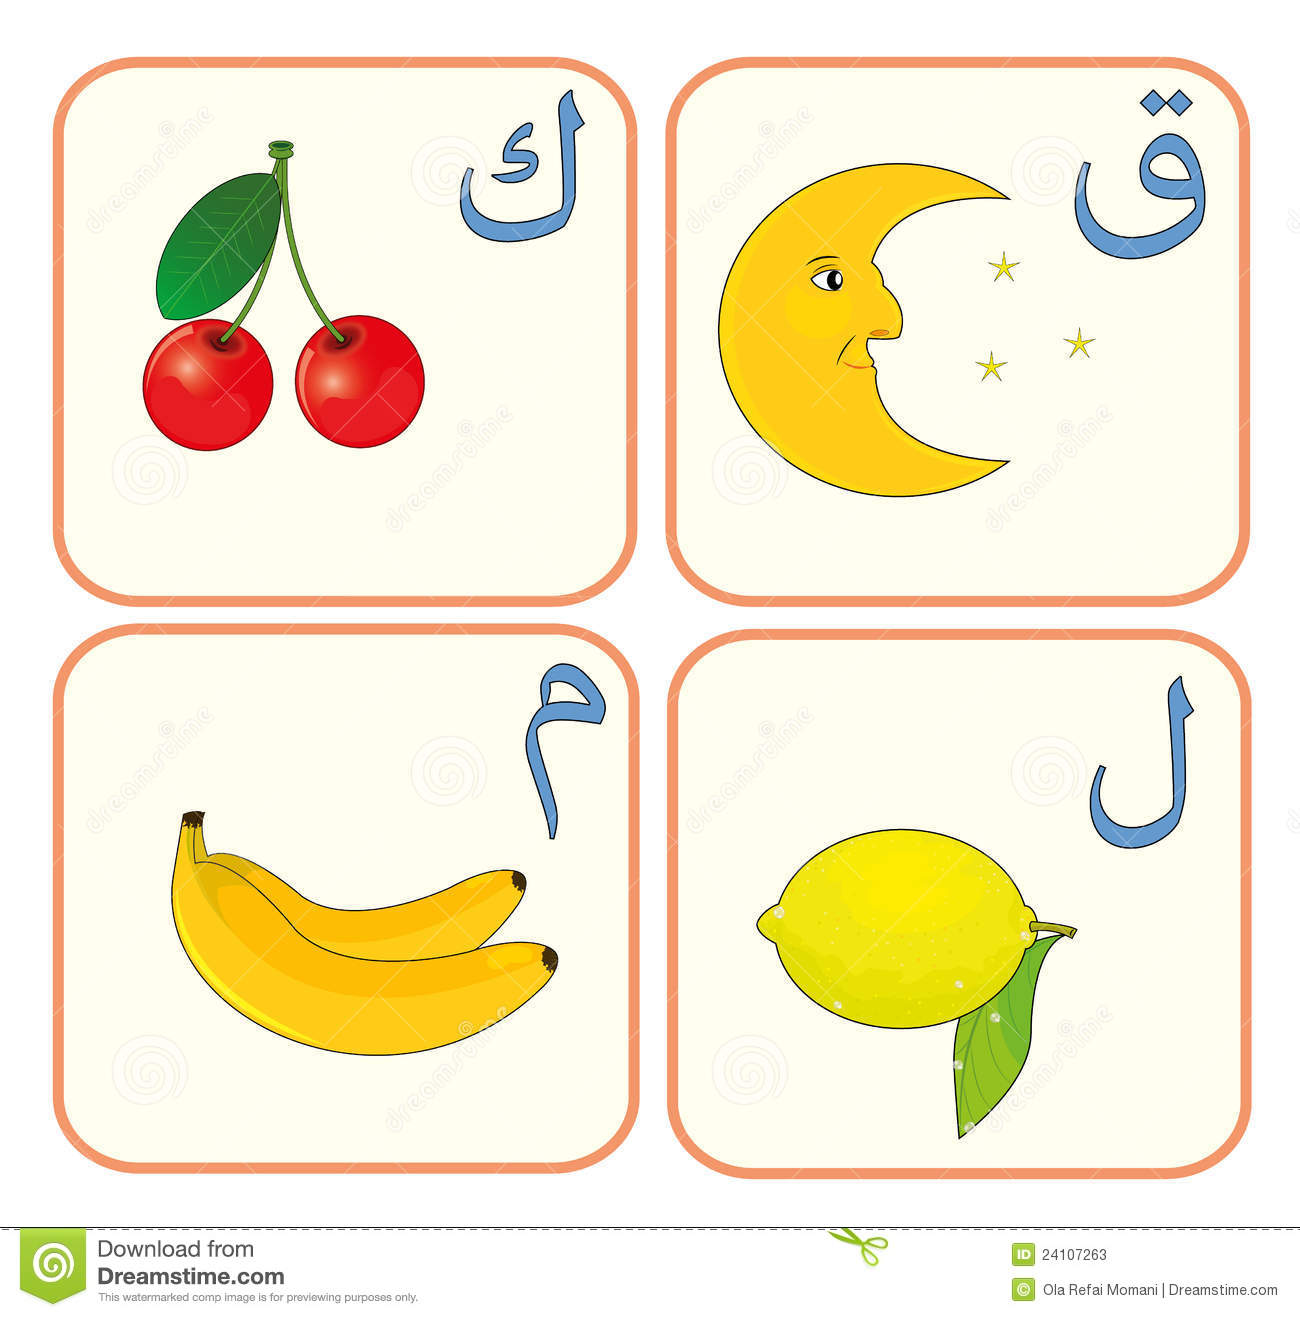 Arabic alphabet for kids with cute animals and fruit for each letter - Alphabet Arabic Cute Kids Childhood Vegetables Coloring Fruit